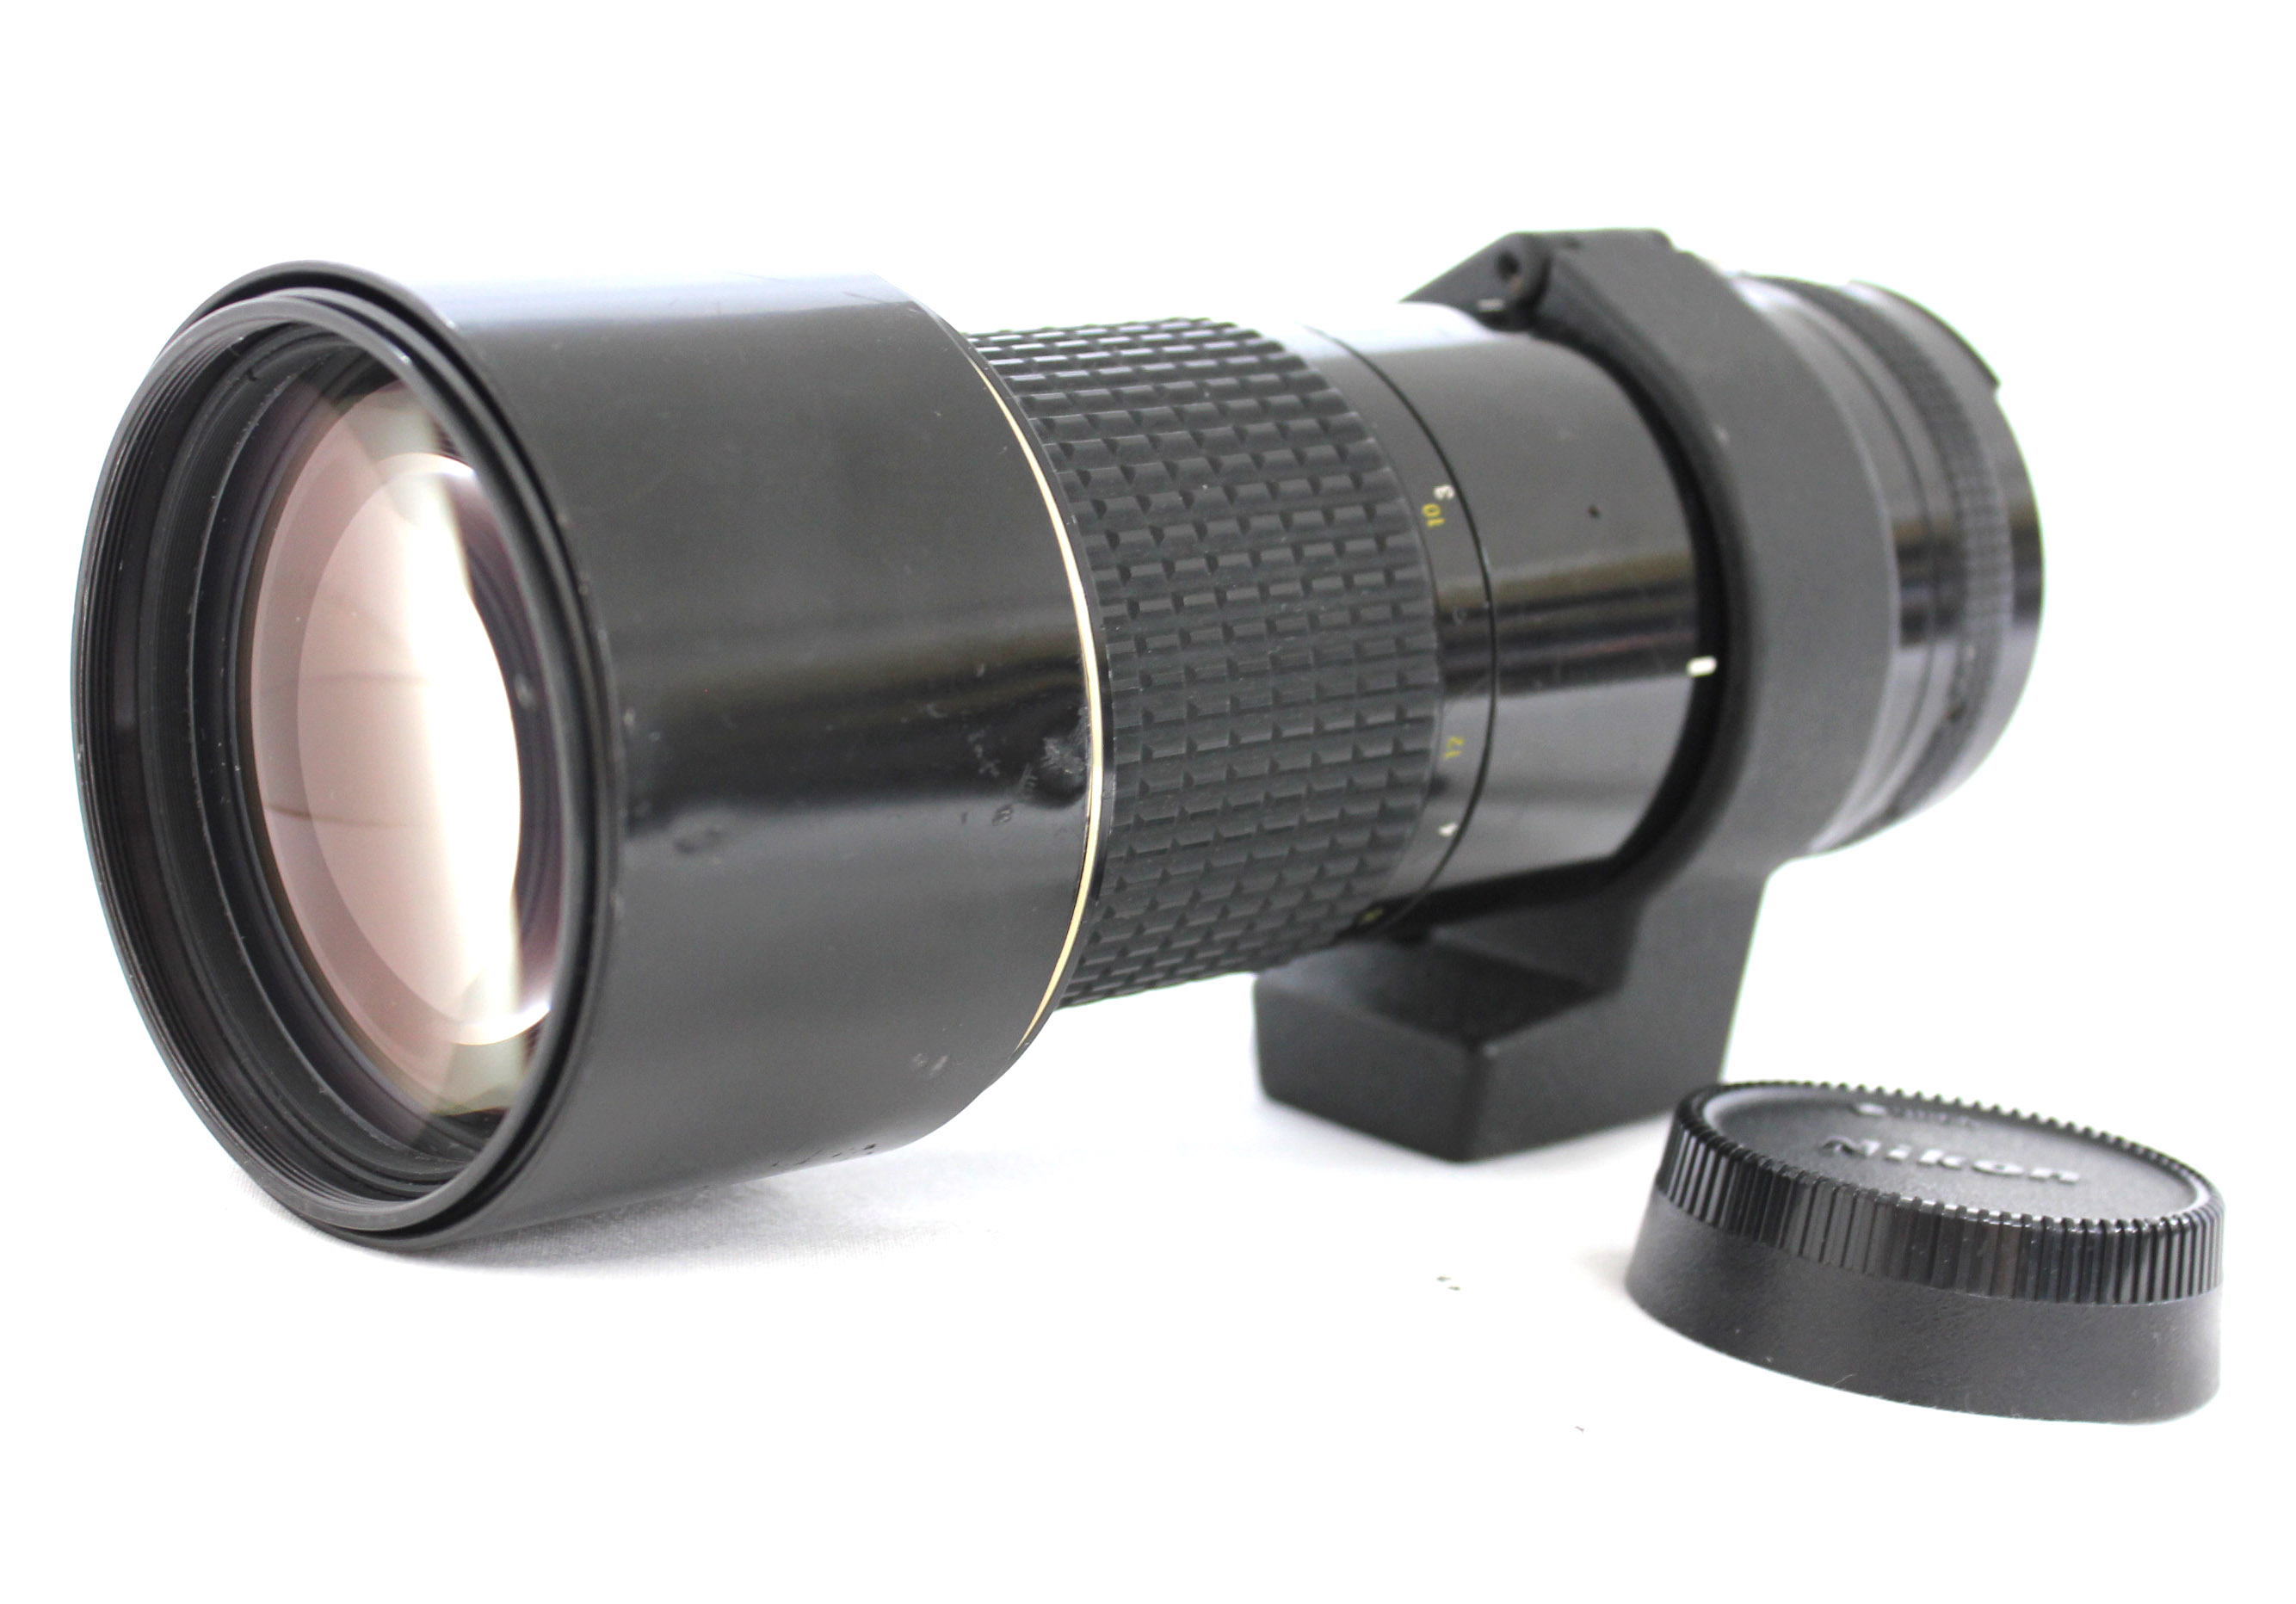 [Excellent++++] Nikon Ai Nikkor ED IF 300mm F/4.5 MF Telephoto Lens F Mount from Japan